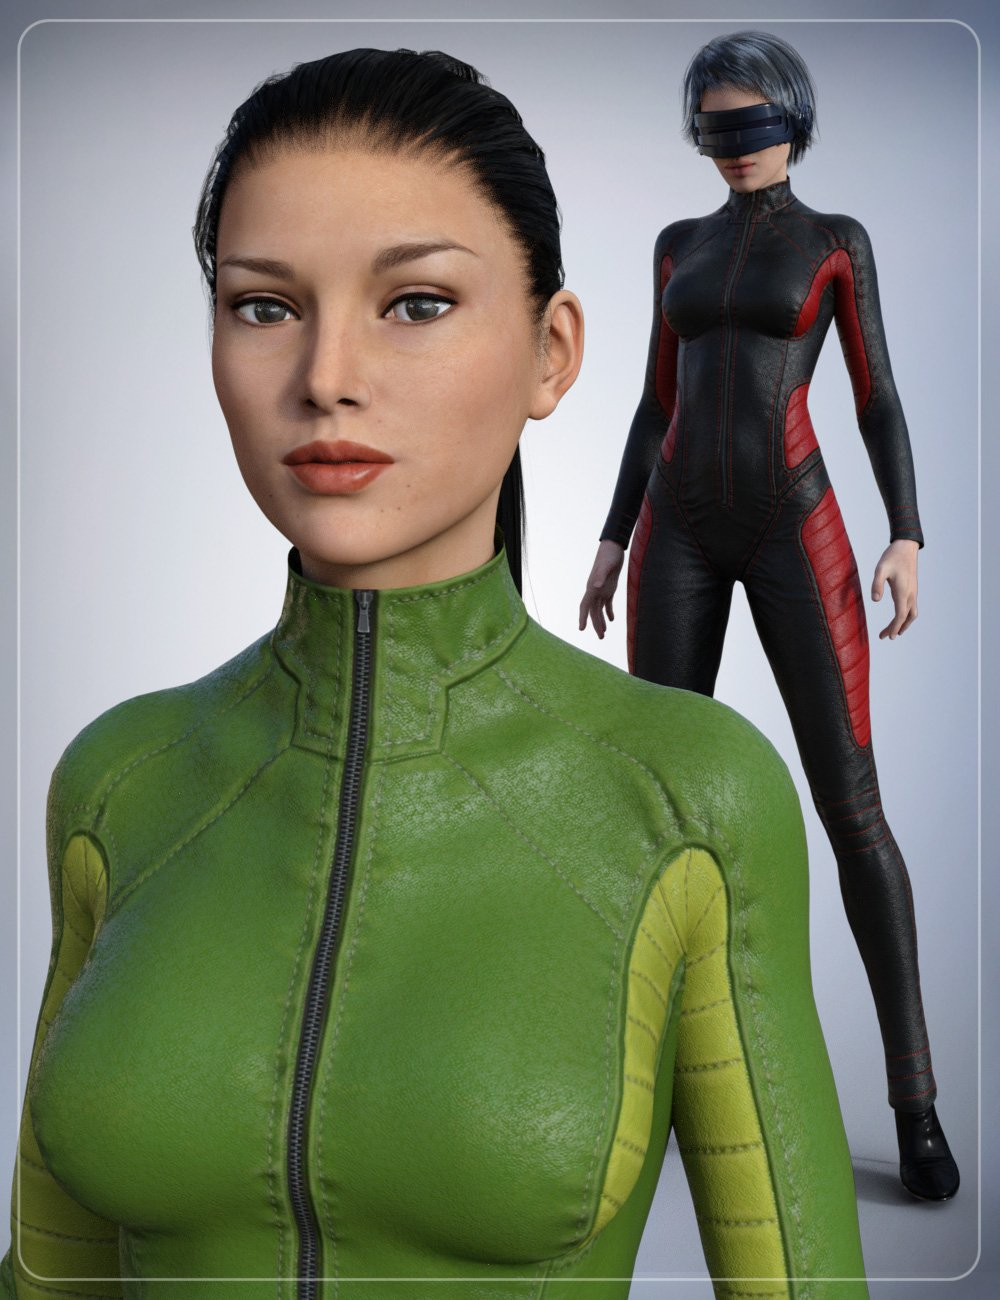 Leather Body Suit by: smay, 3D Models by Daz 3D